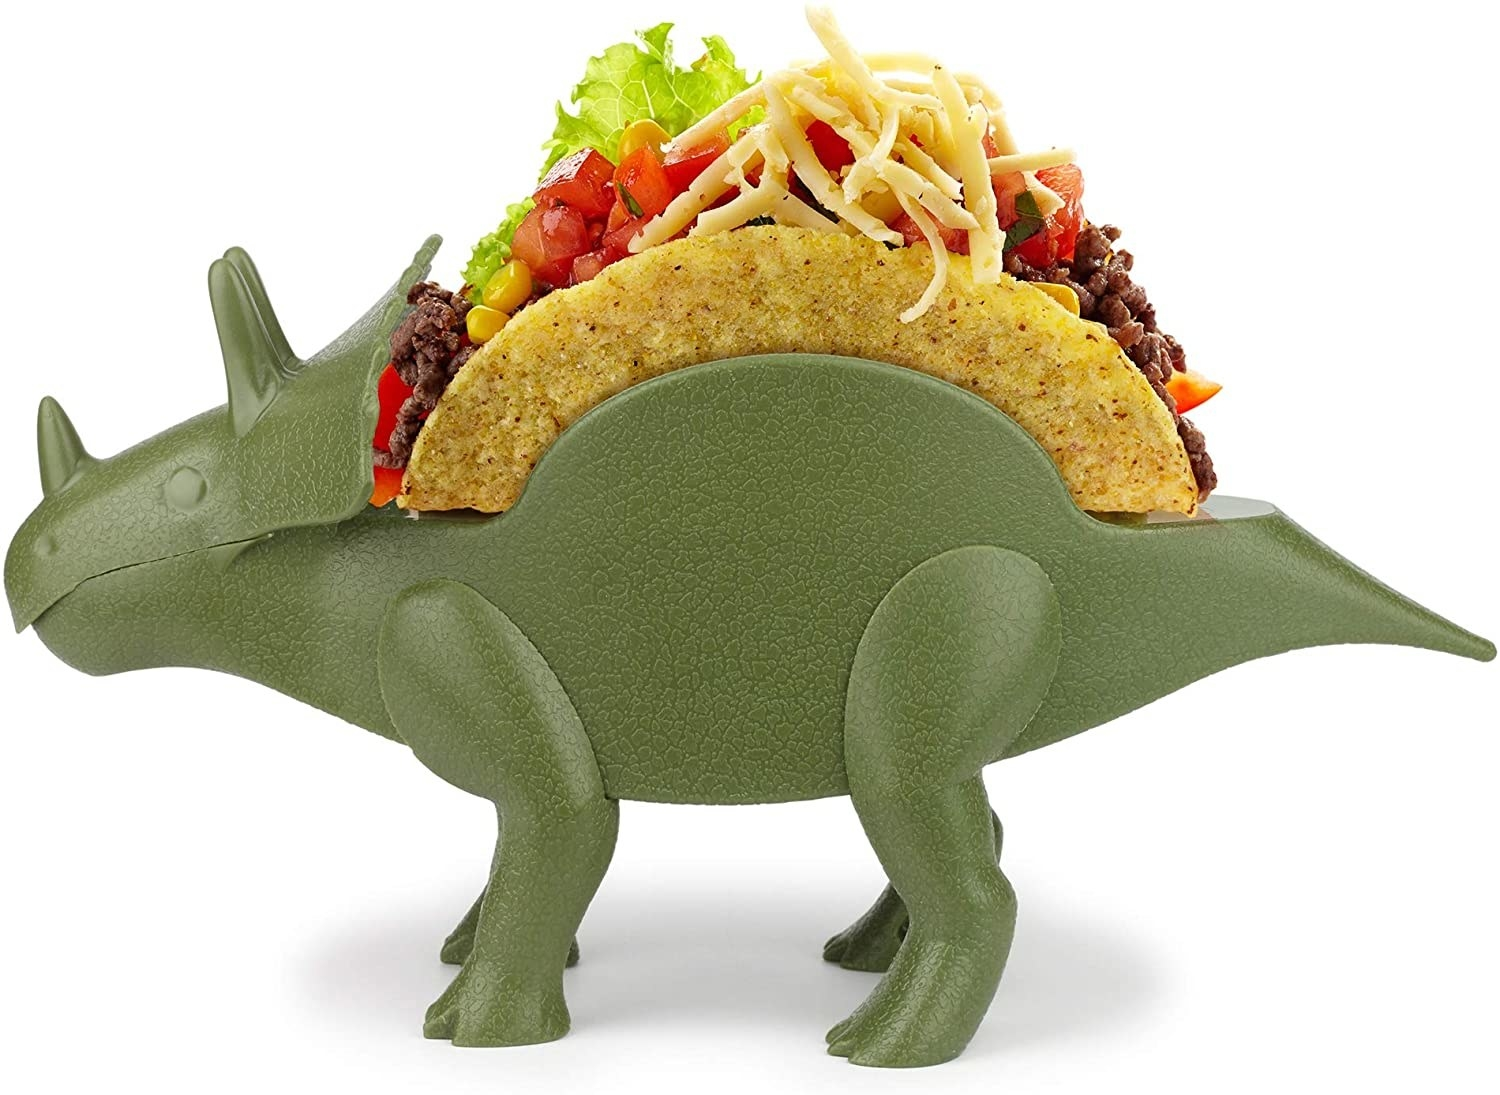 green triceratops taco holder with tacos inside